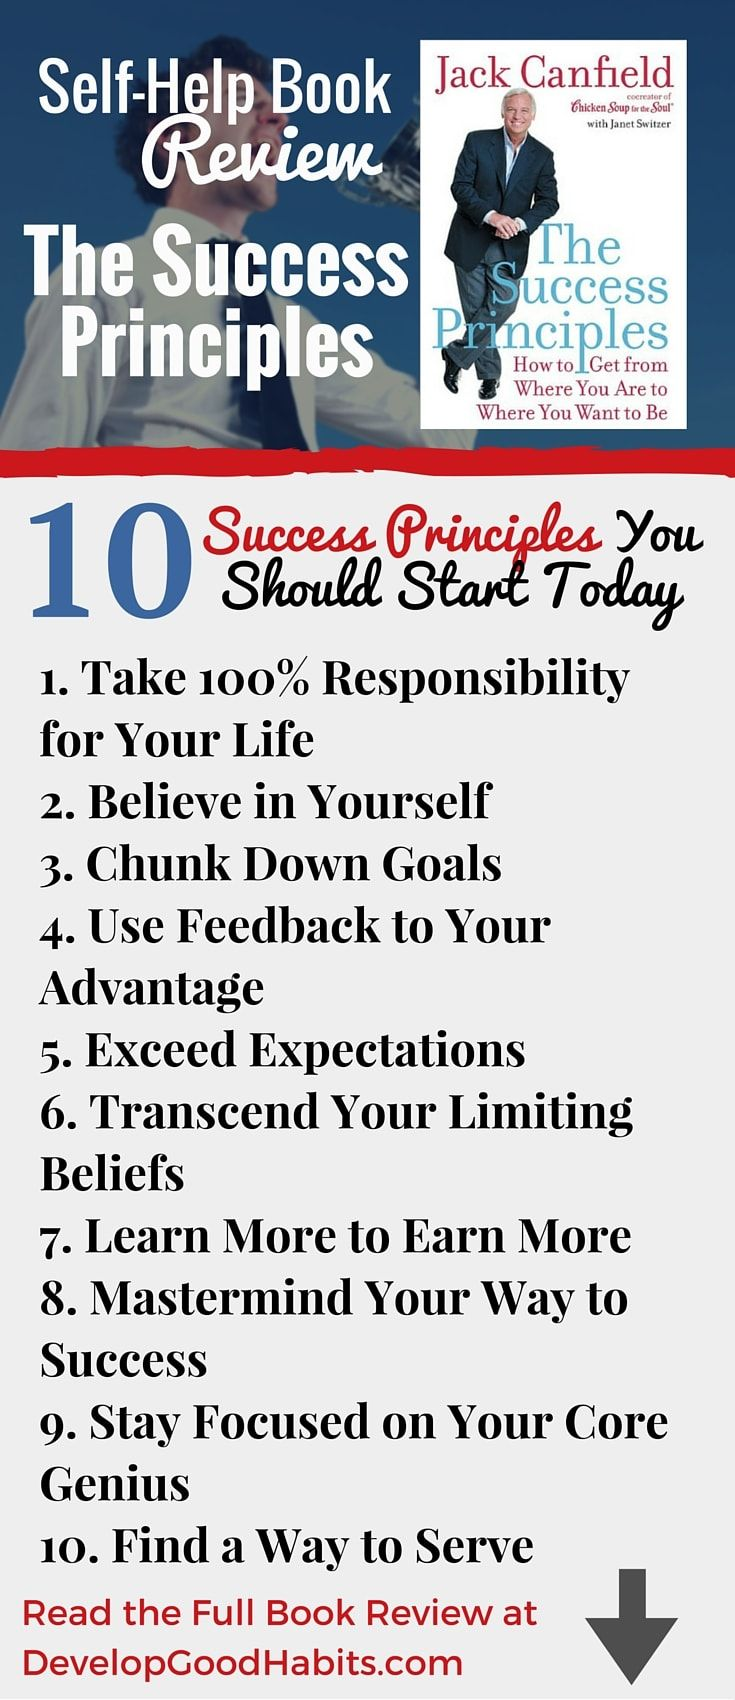 10Principles ofBillionaires That Should BeAdopted toSucceed